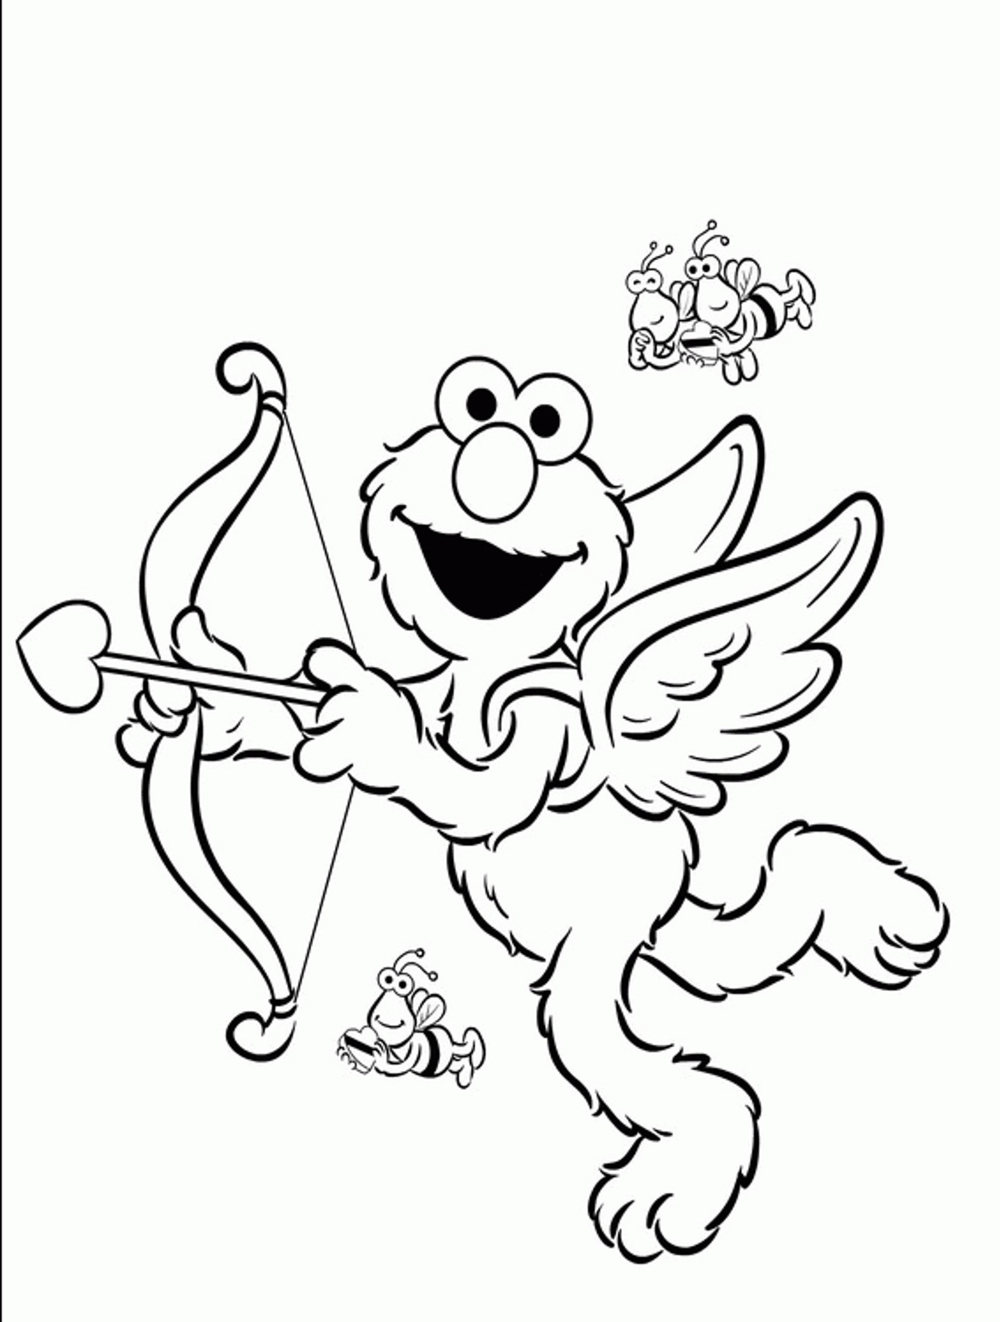 Elmo Valentines Day Coloring Pages